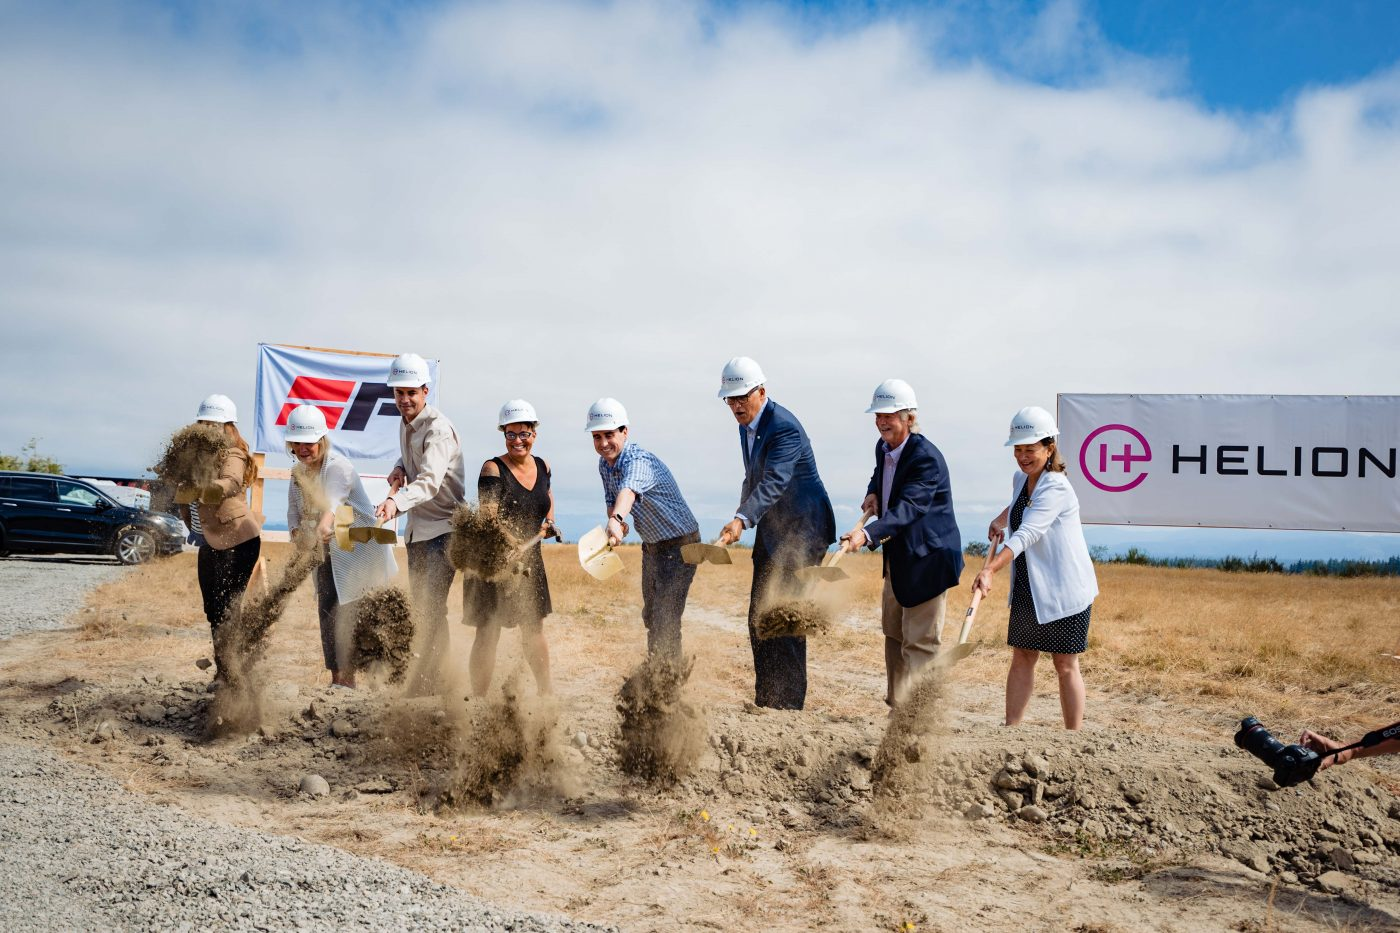 Helion and elected officials breaking ground in front of Helion sign